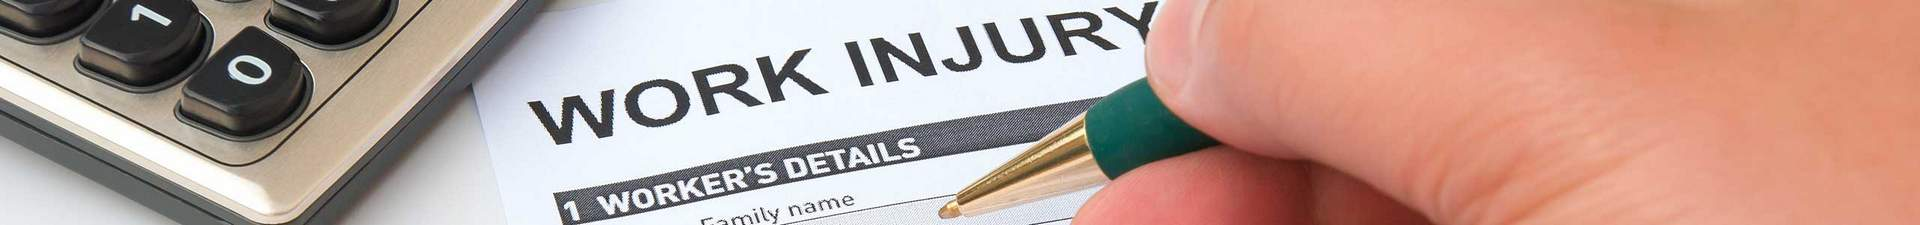 Naperville Third Party Workers' Compensation Claim Lawyer